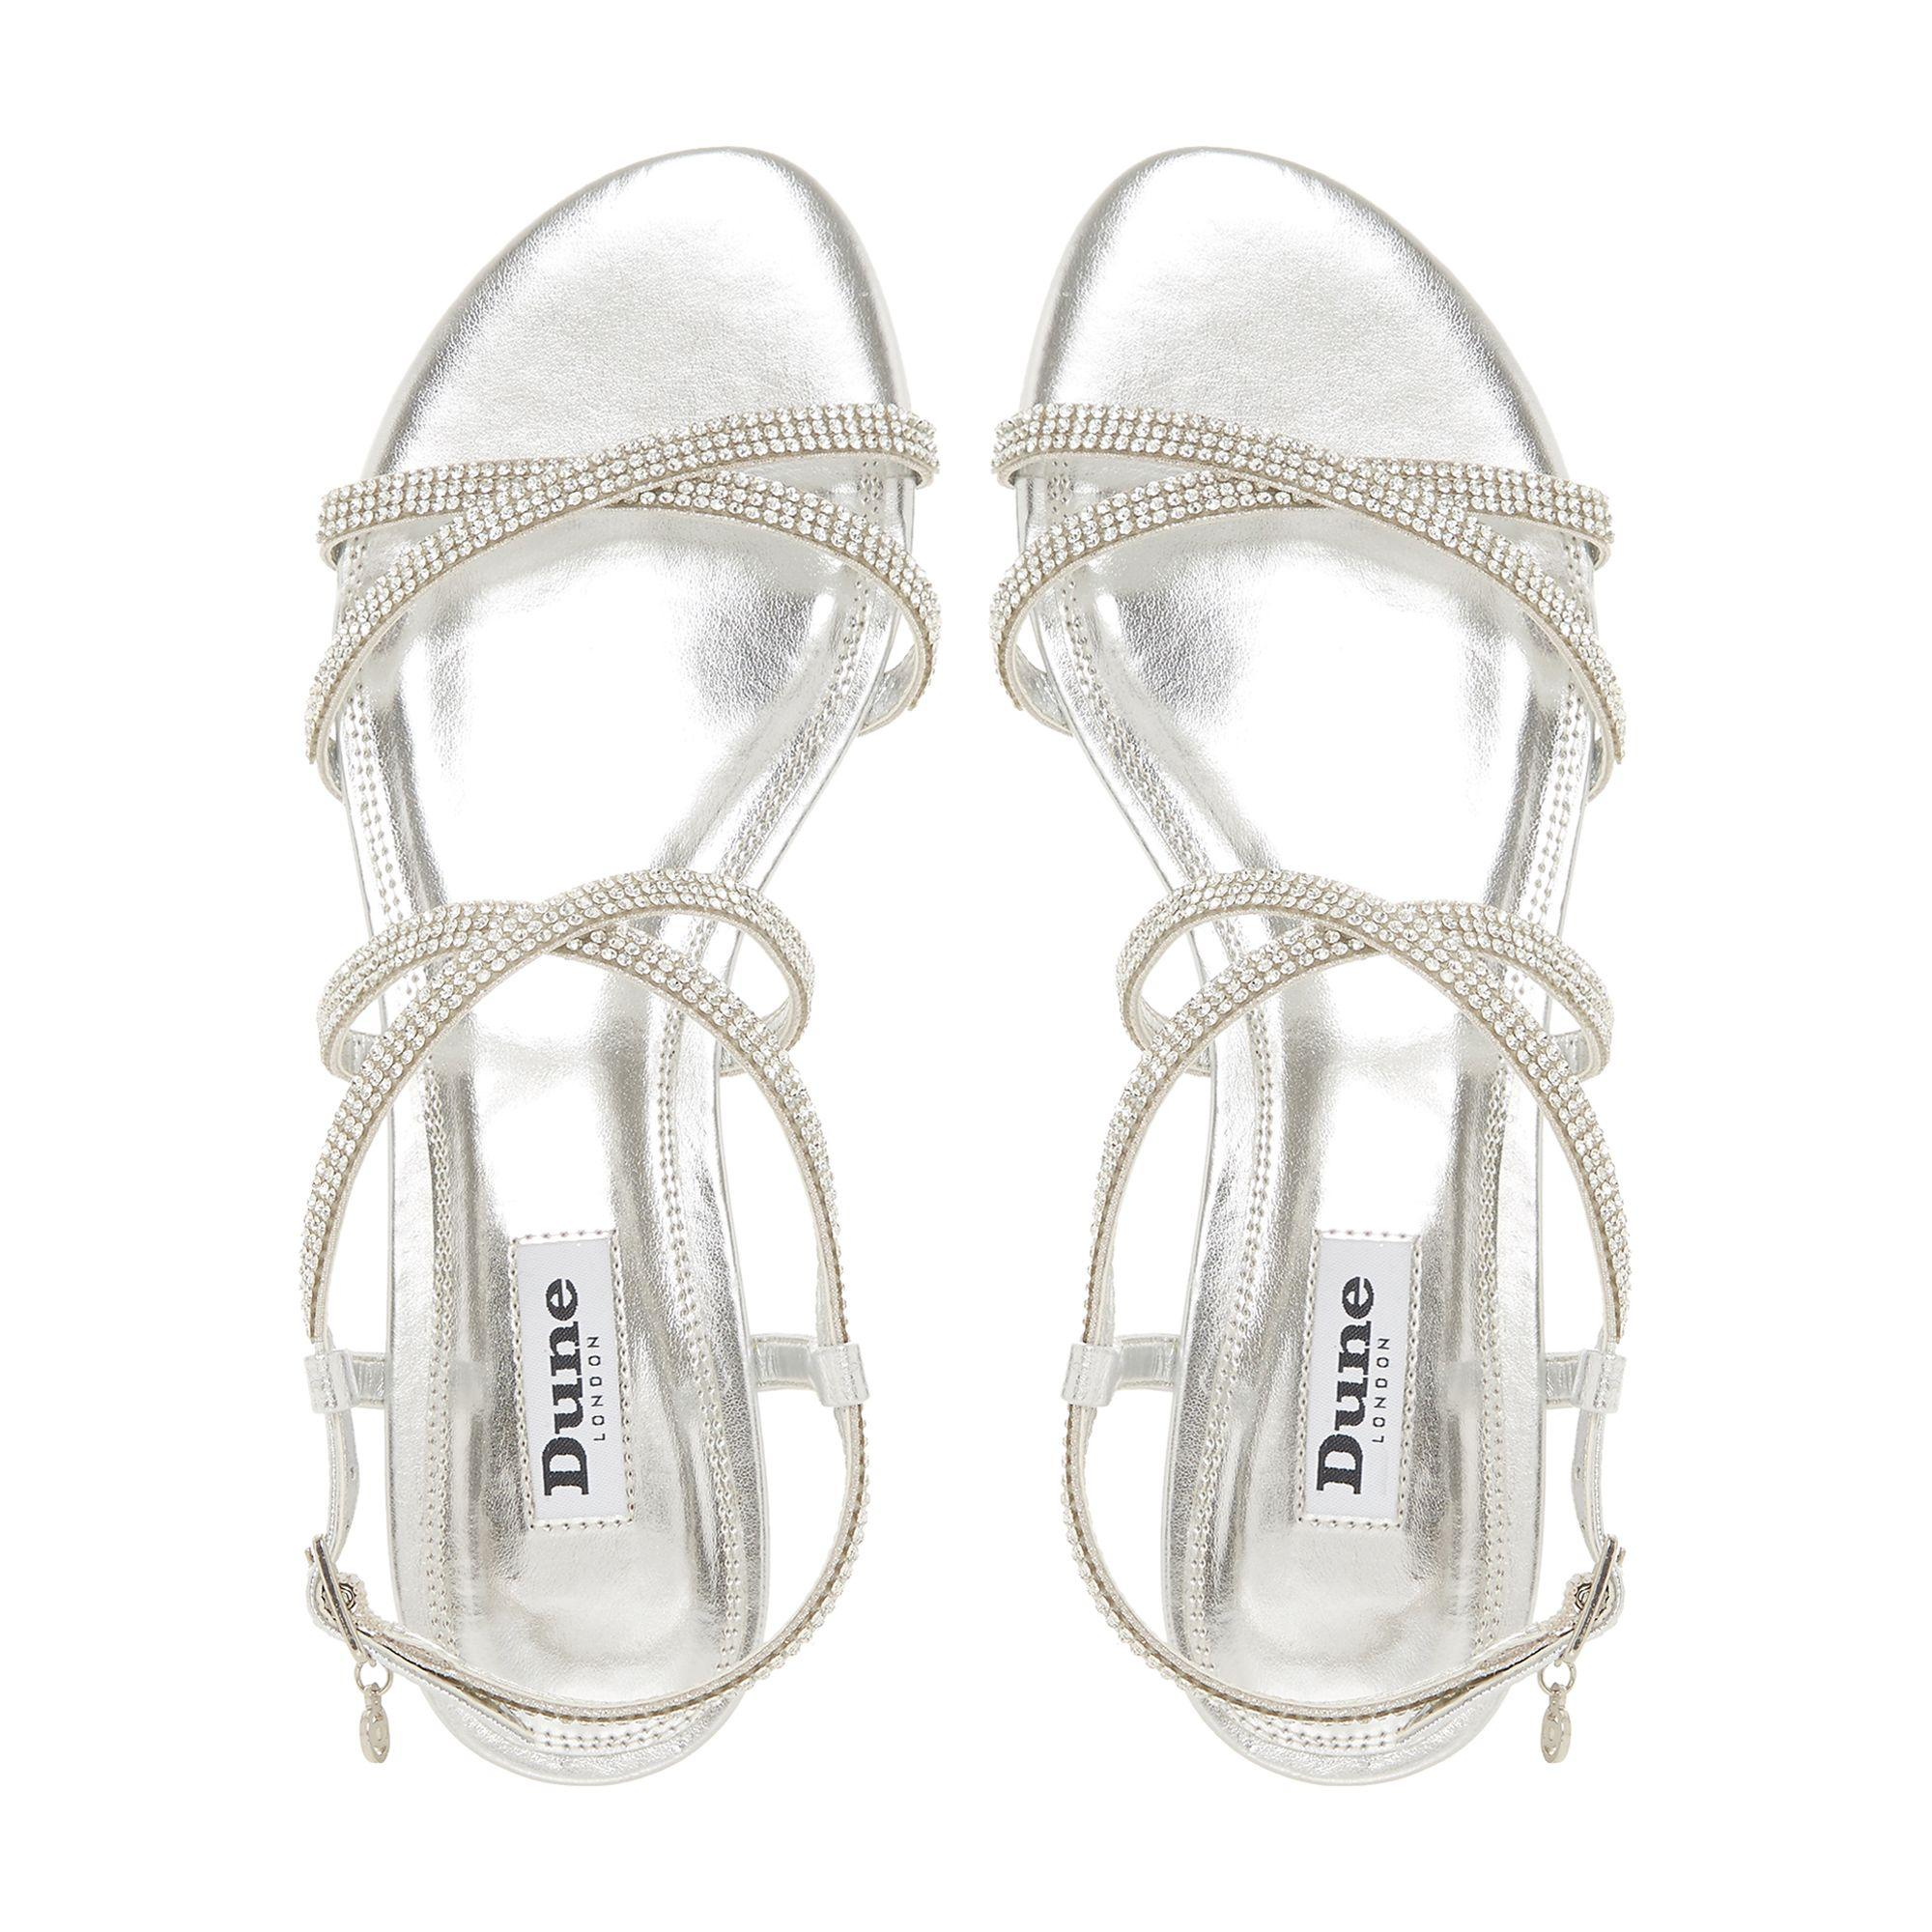 95a1fa57291 ... Silver Leather  neve  Ankle Strap Sandals - Lyst. View fullscreen